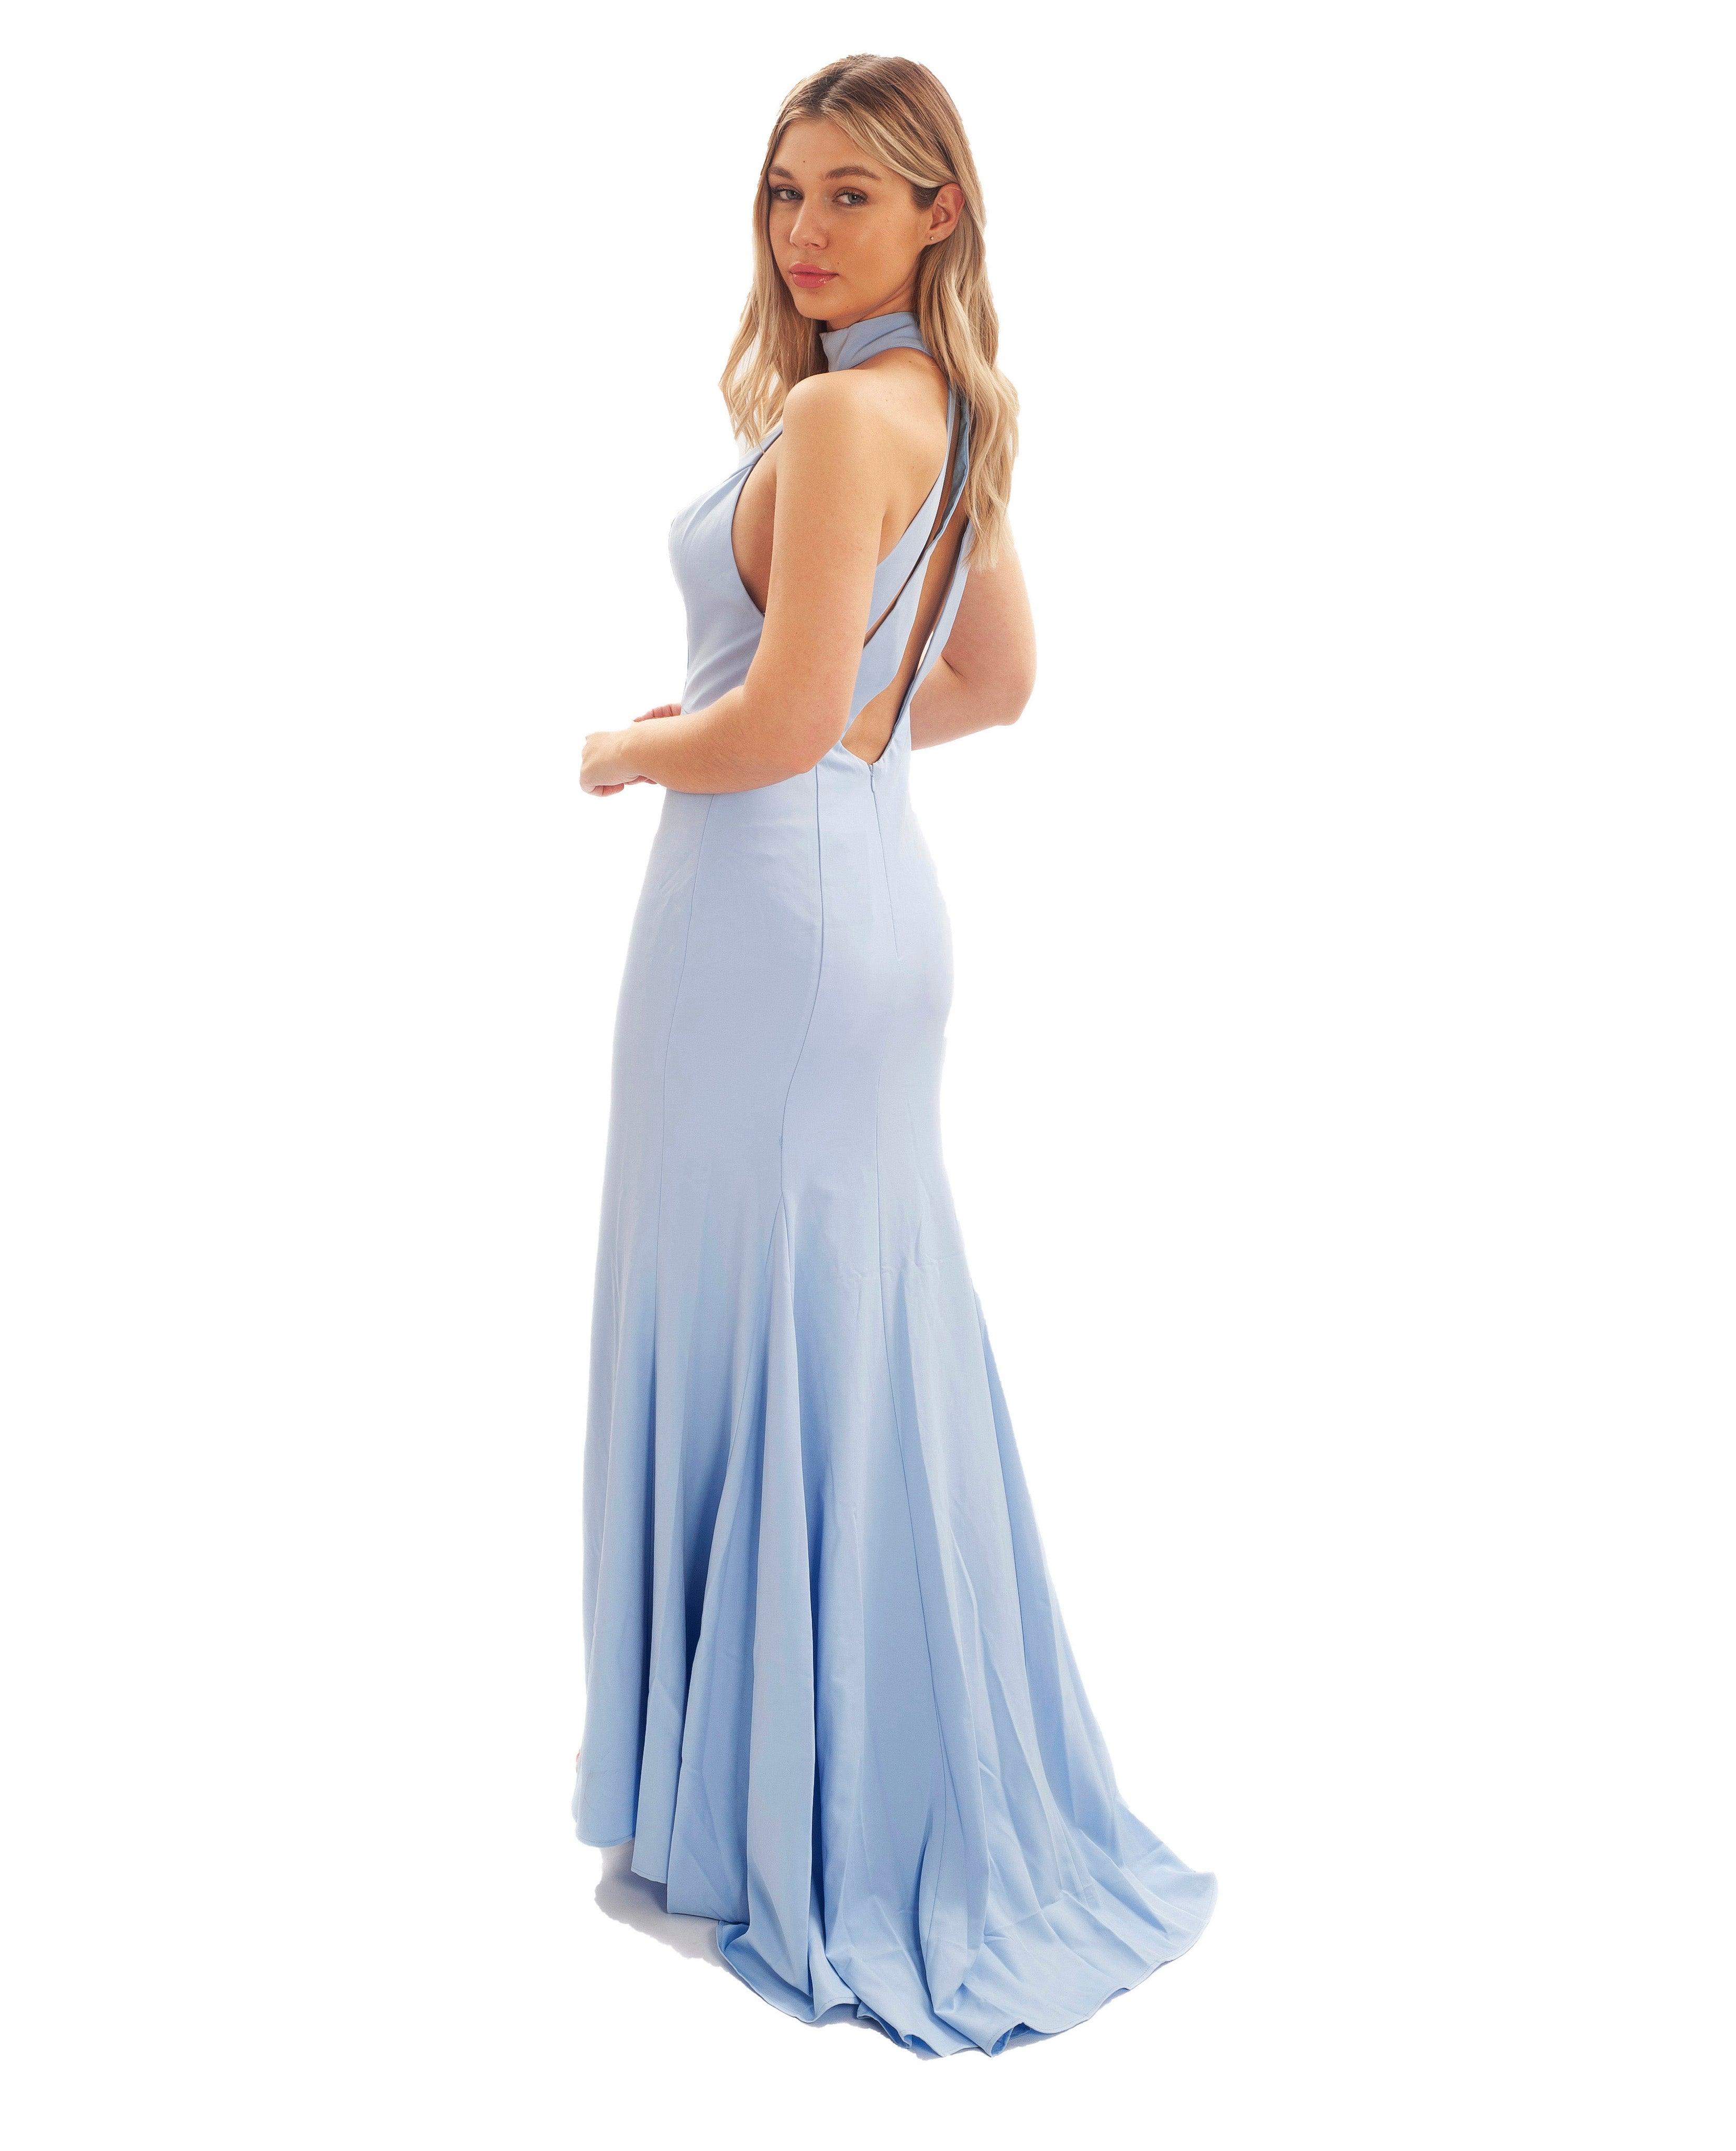 JARLO CECILY SKY BLUE HALTERNECK MAXI WITH BACK STRAP DETAIL